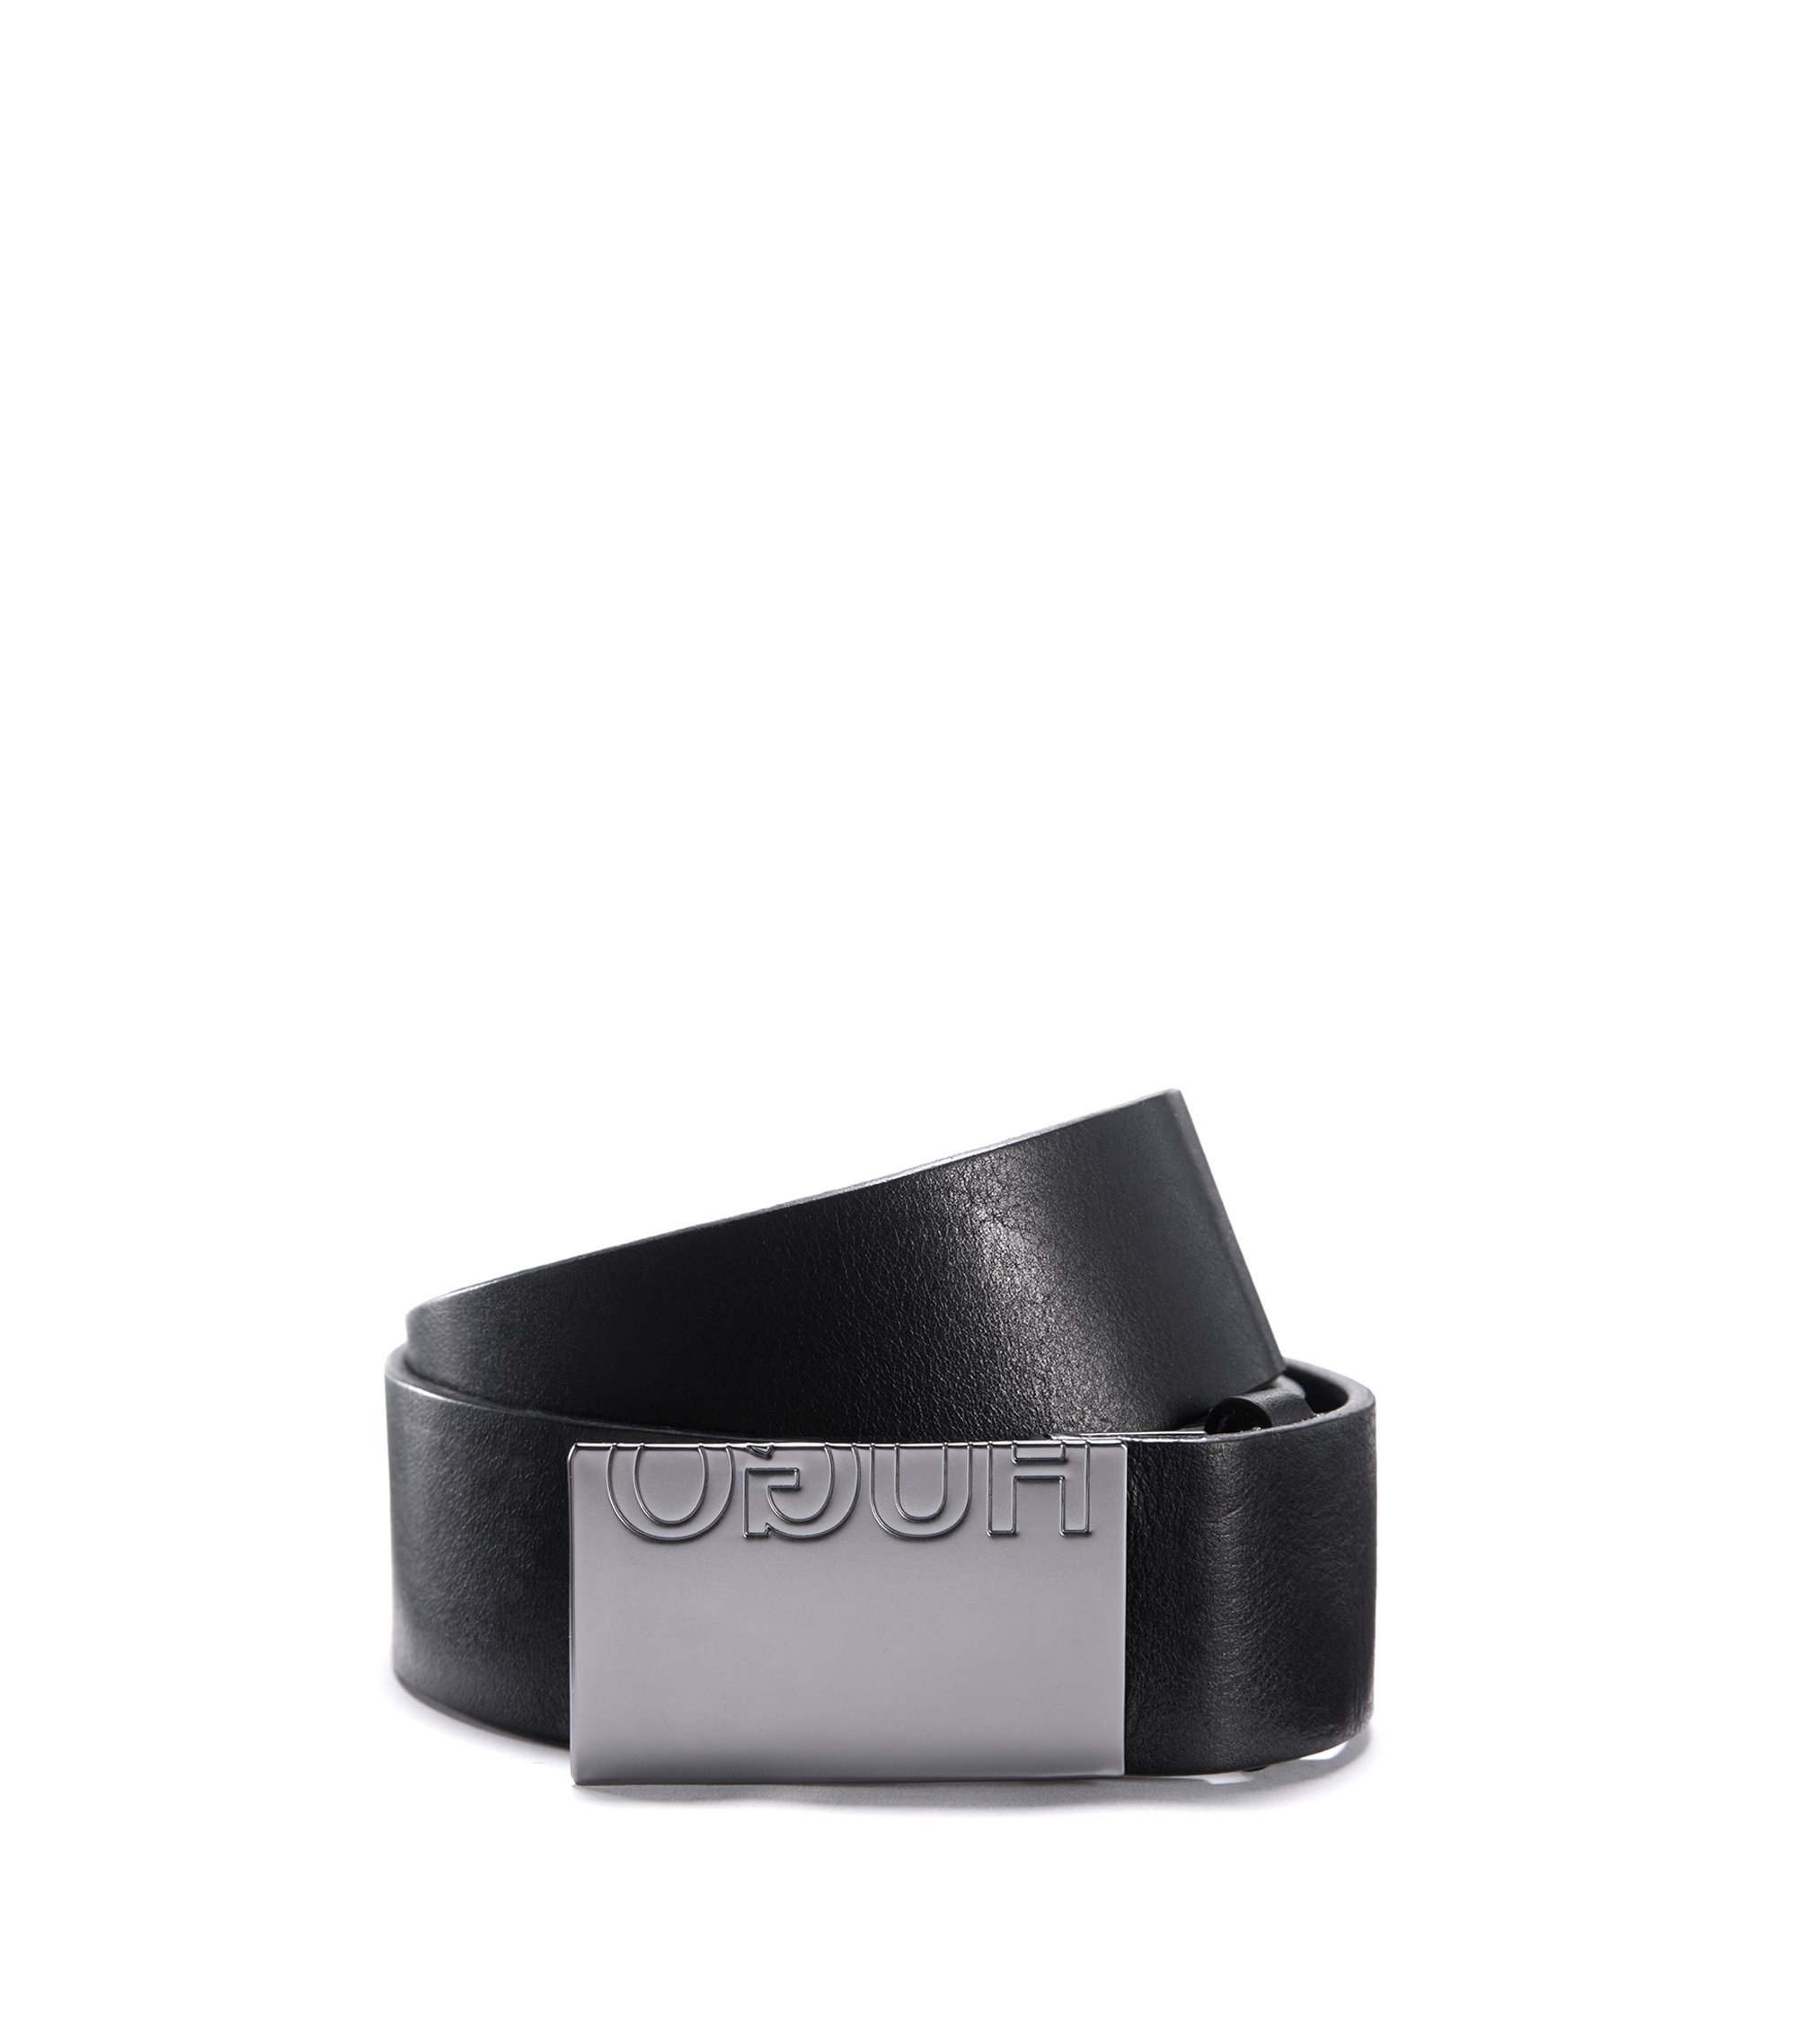 Leather belt with reverse-logo plaque buckle, Black